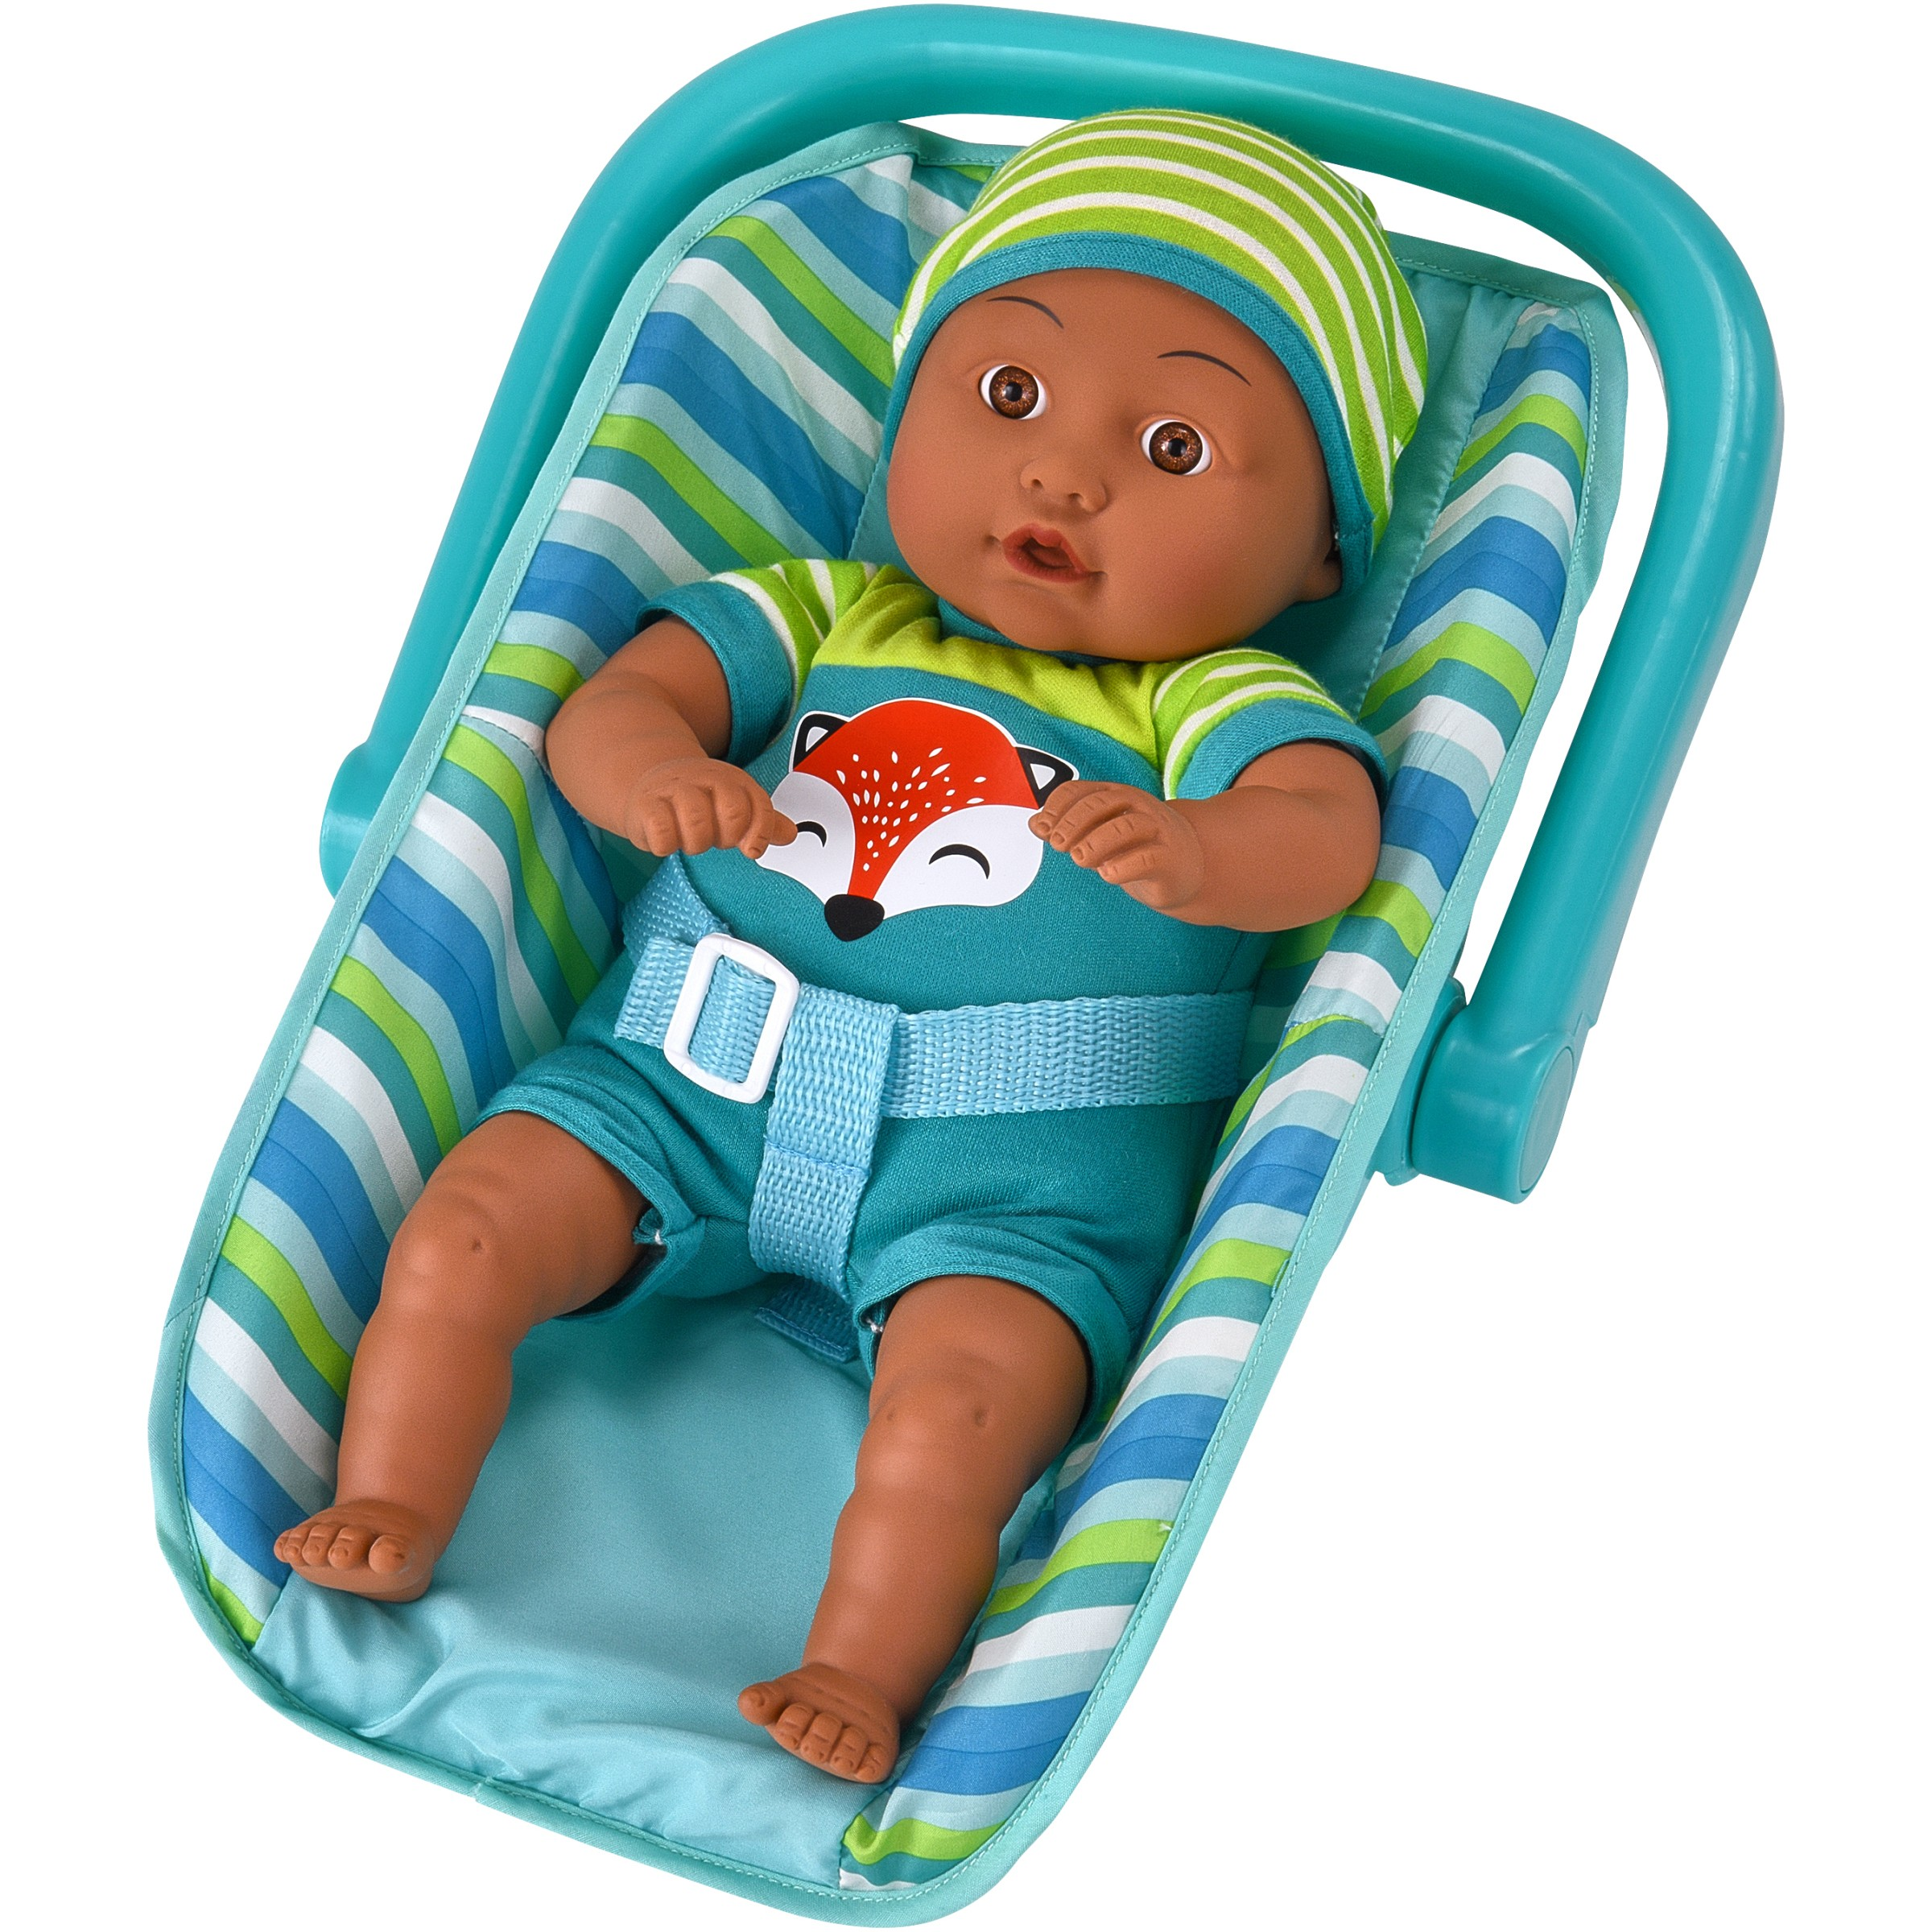 """My Sweet Love 13"""" Soft Baby Doll with Carrier, Teal Fox Outfit"""